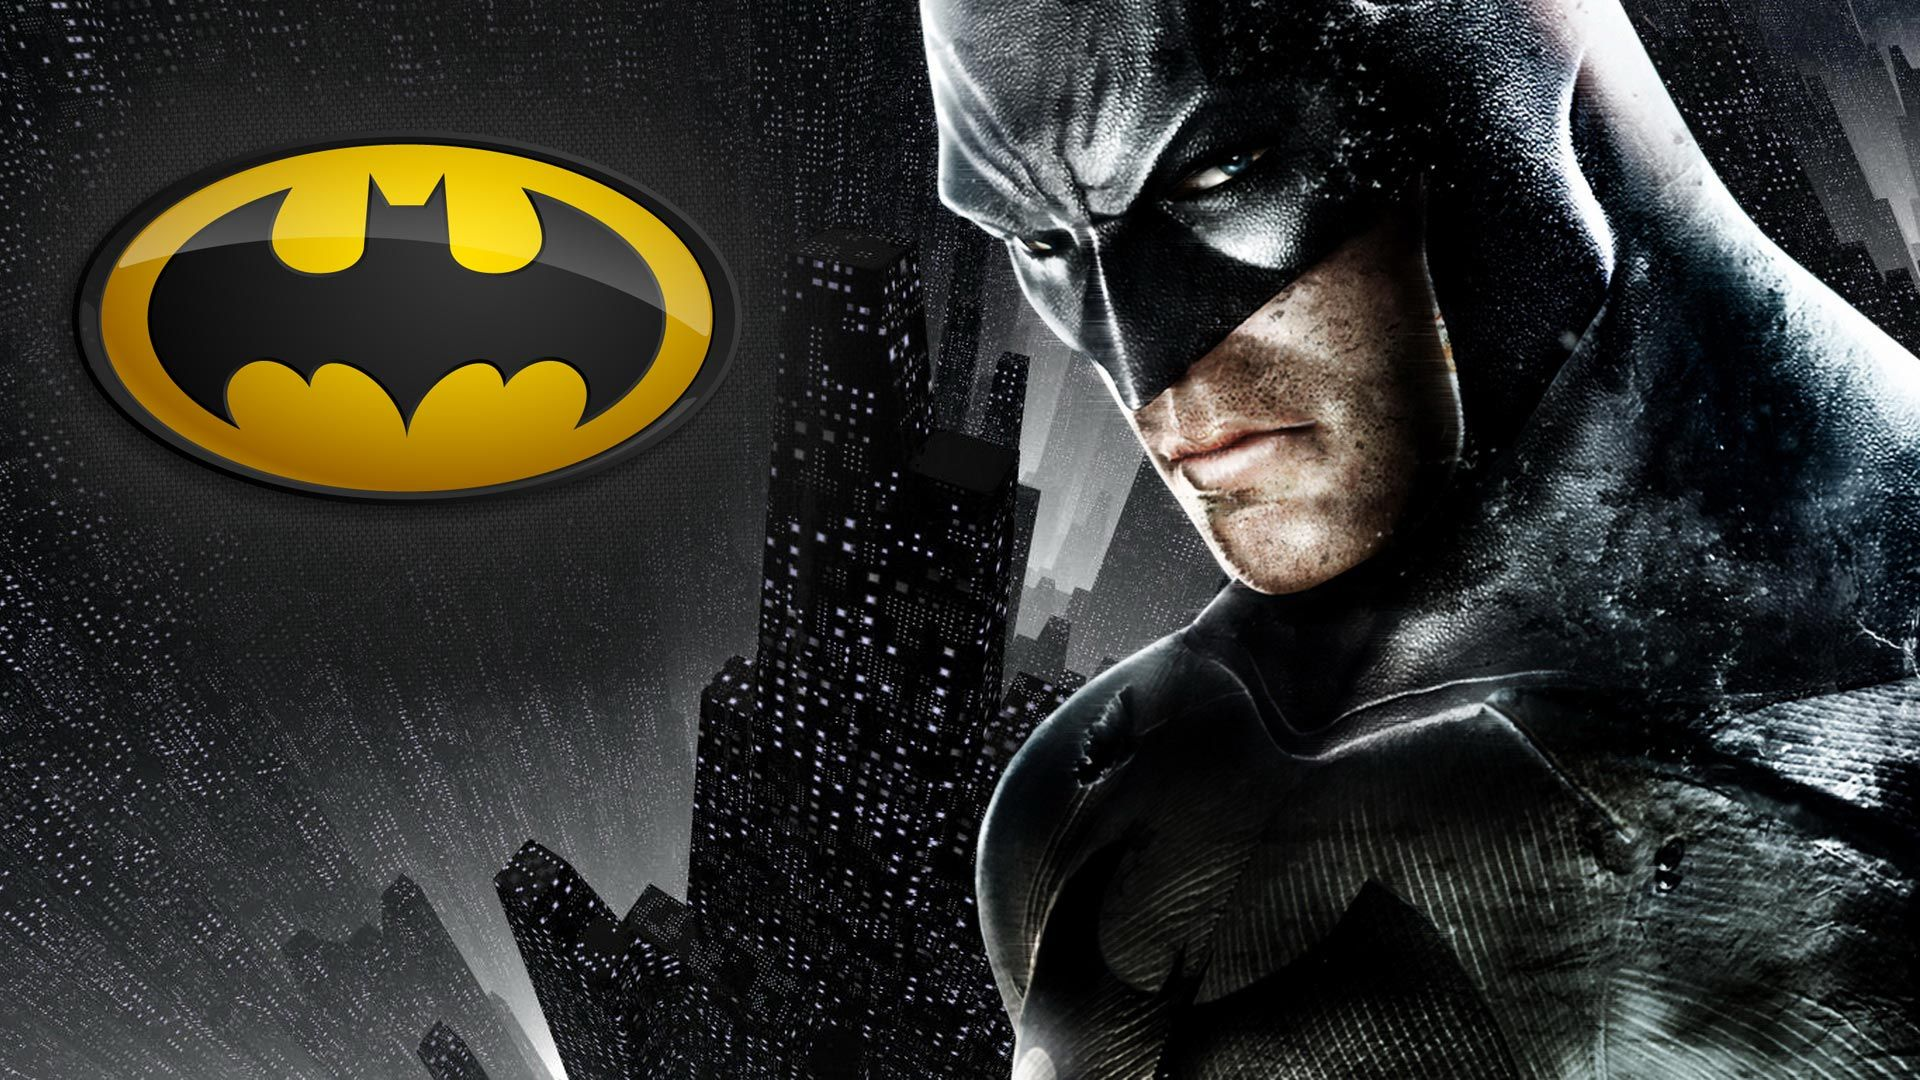 The 10 Best Batman Storylines We Need To See On The Big Screen